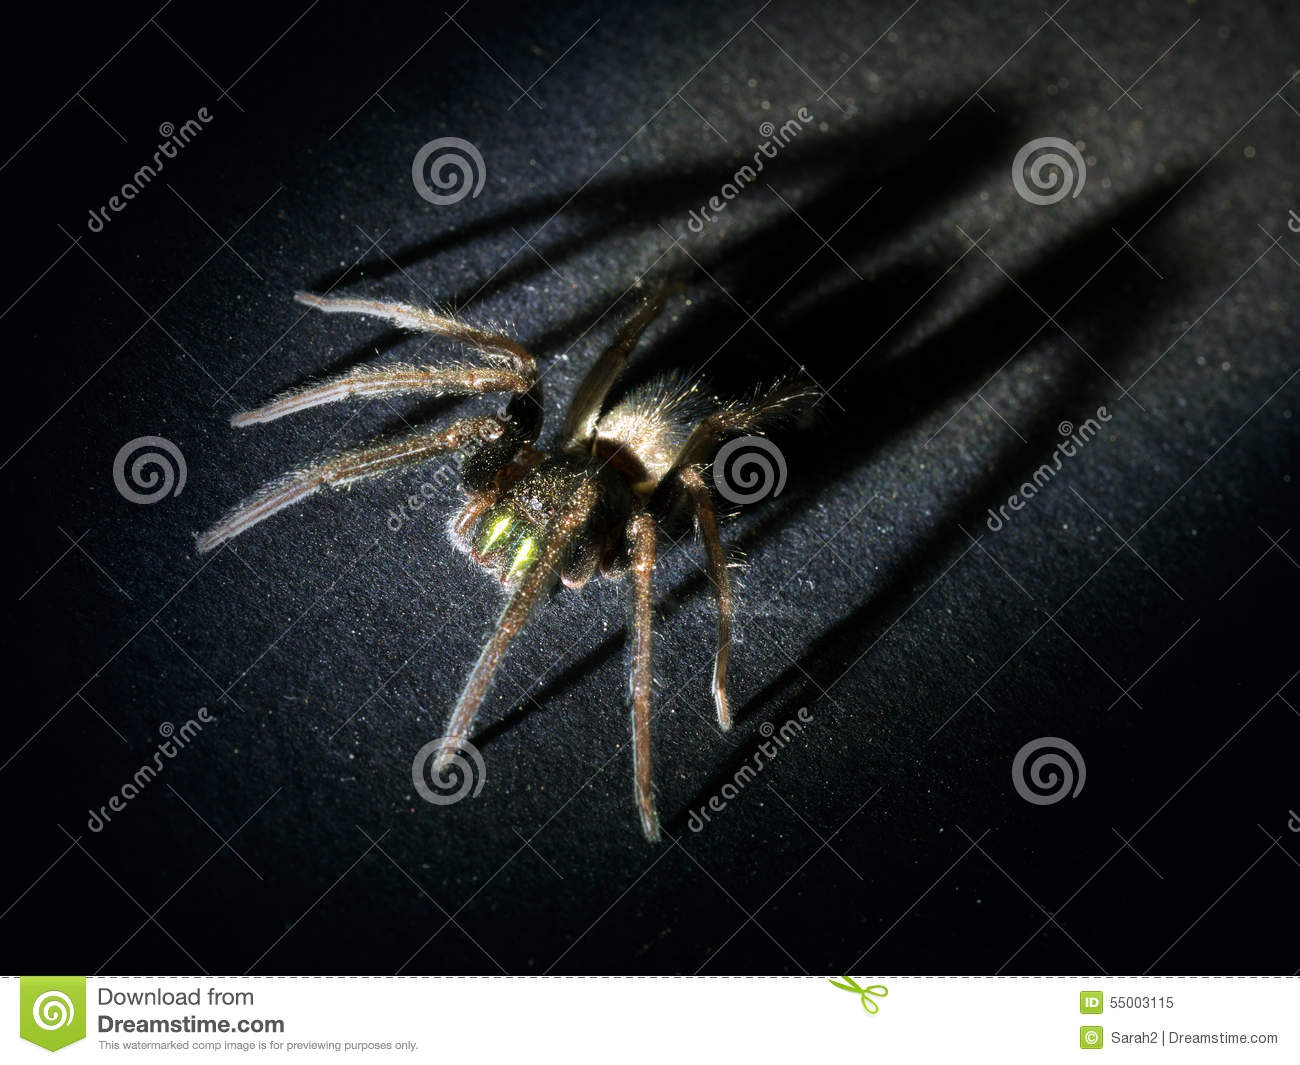 Consider, pictures of big huge hairy spiders